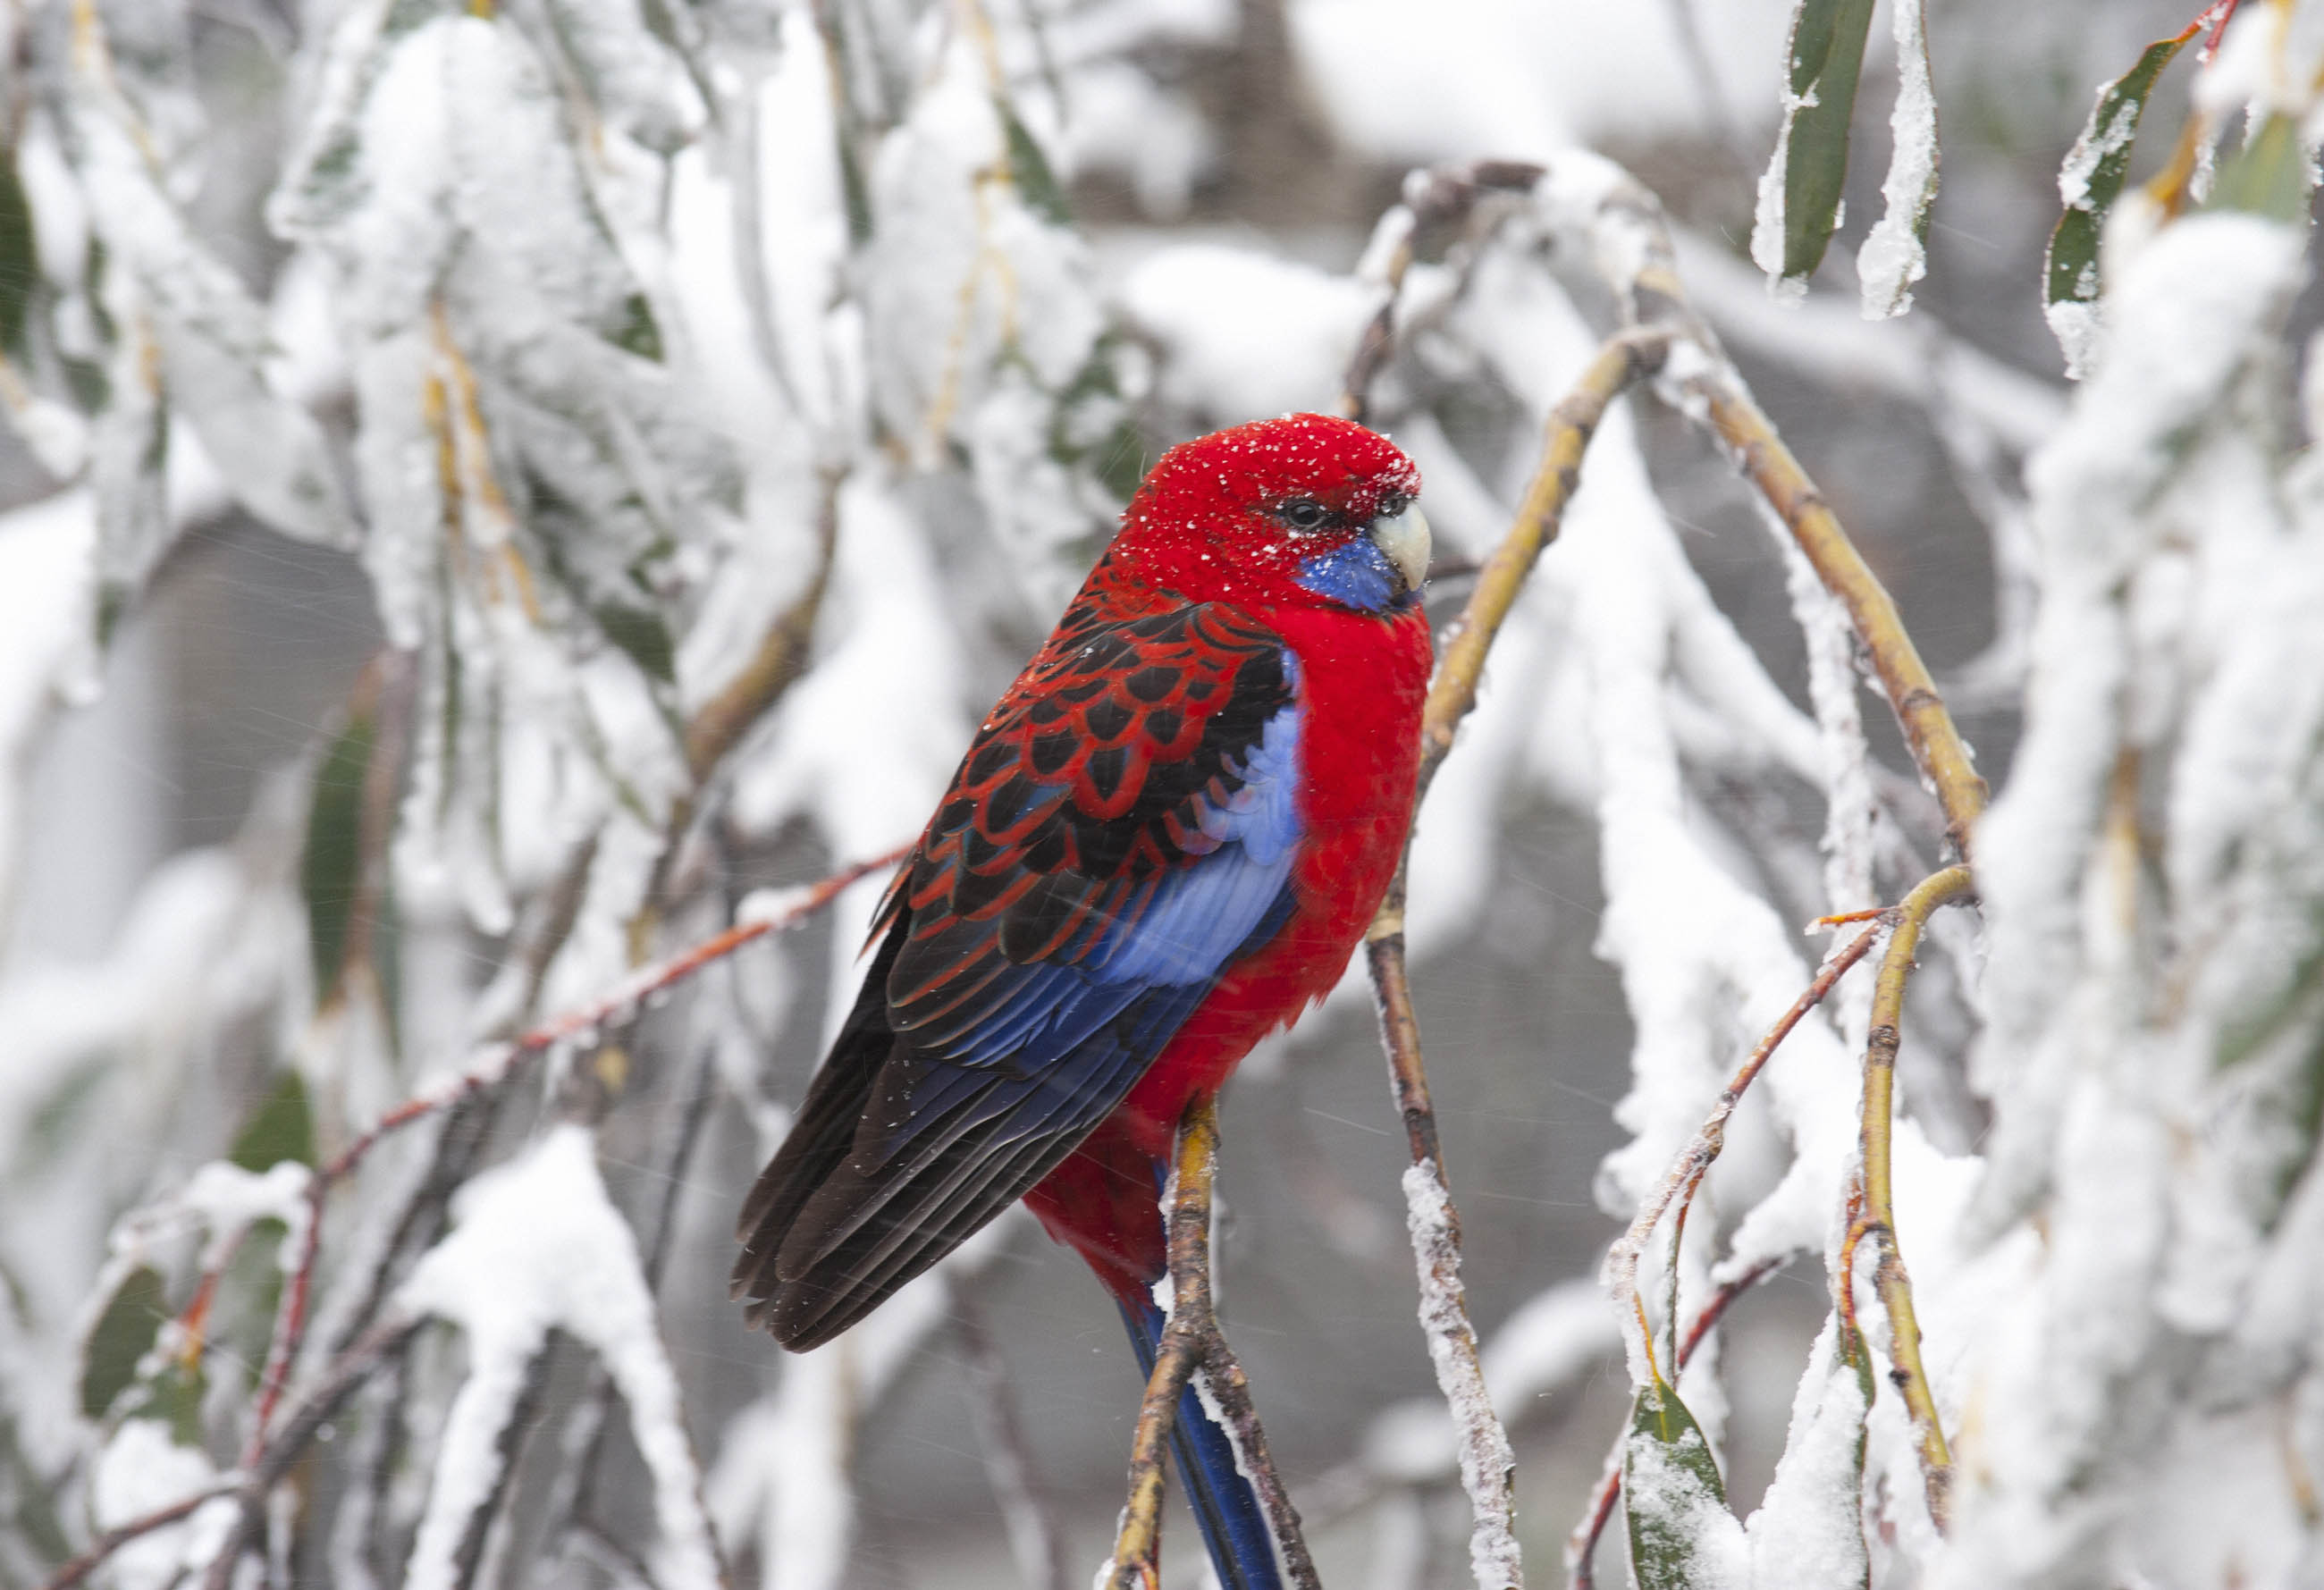 Rosella in a Blizzard